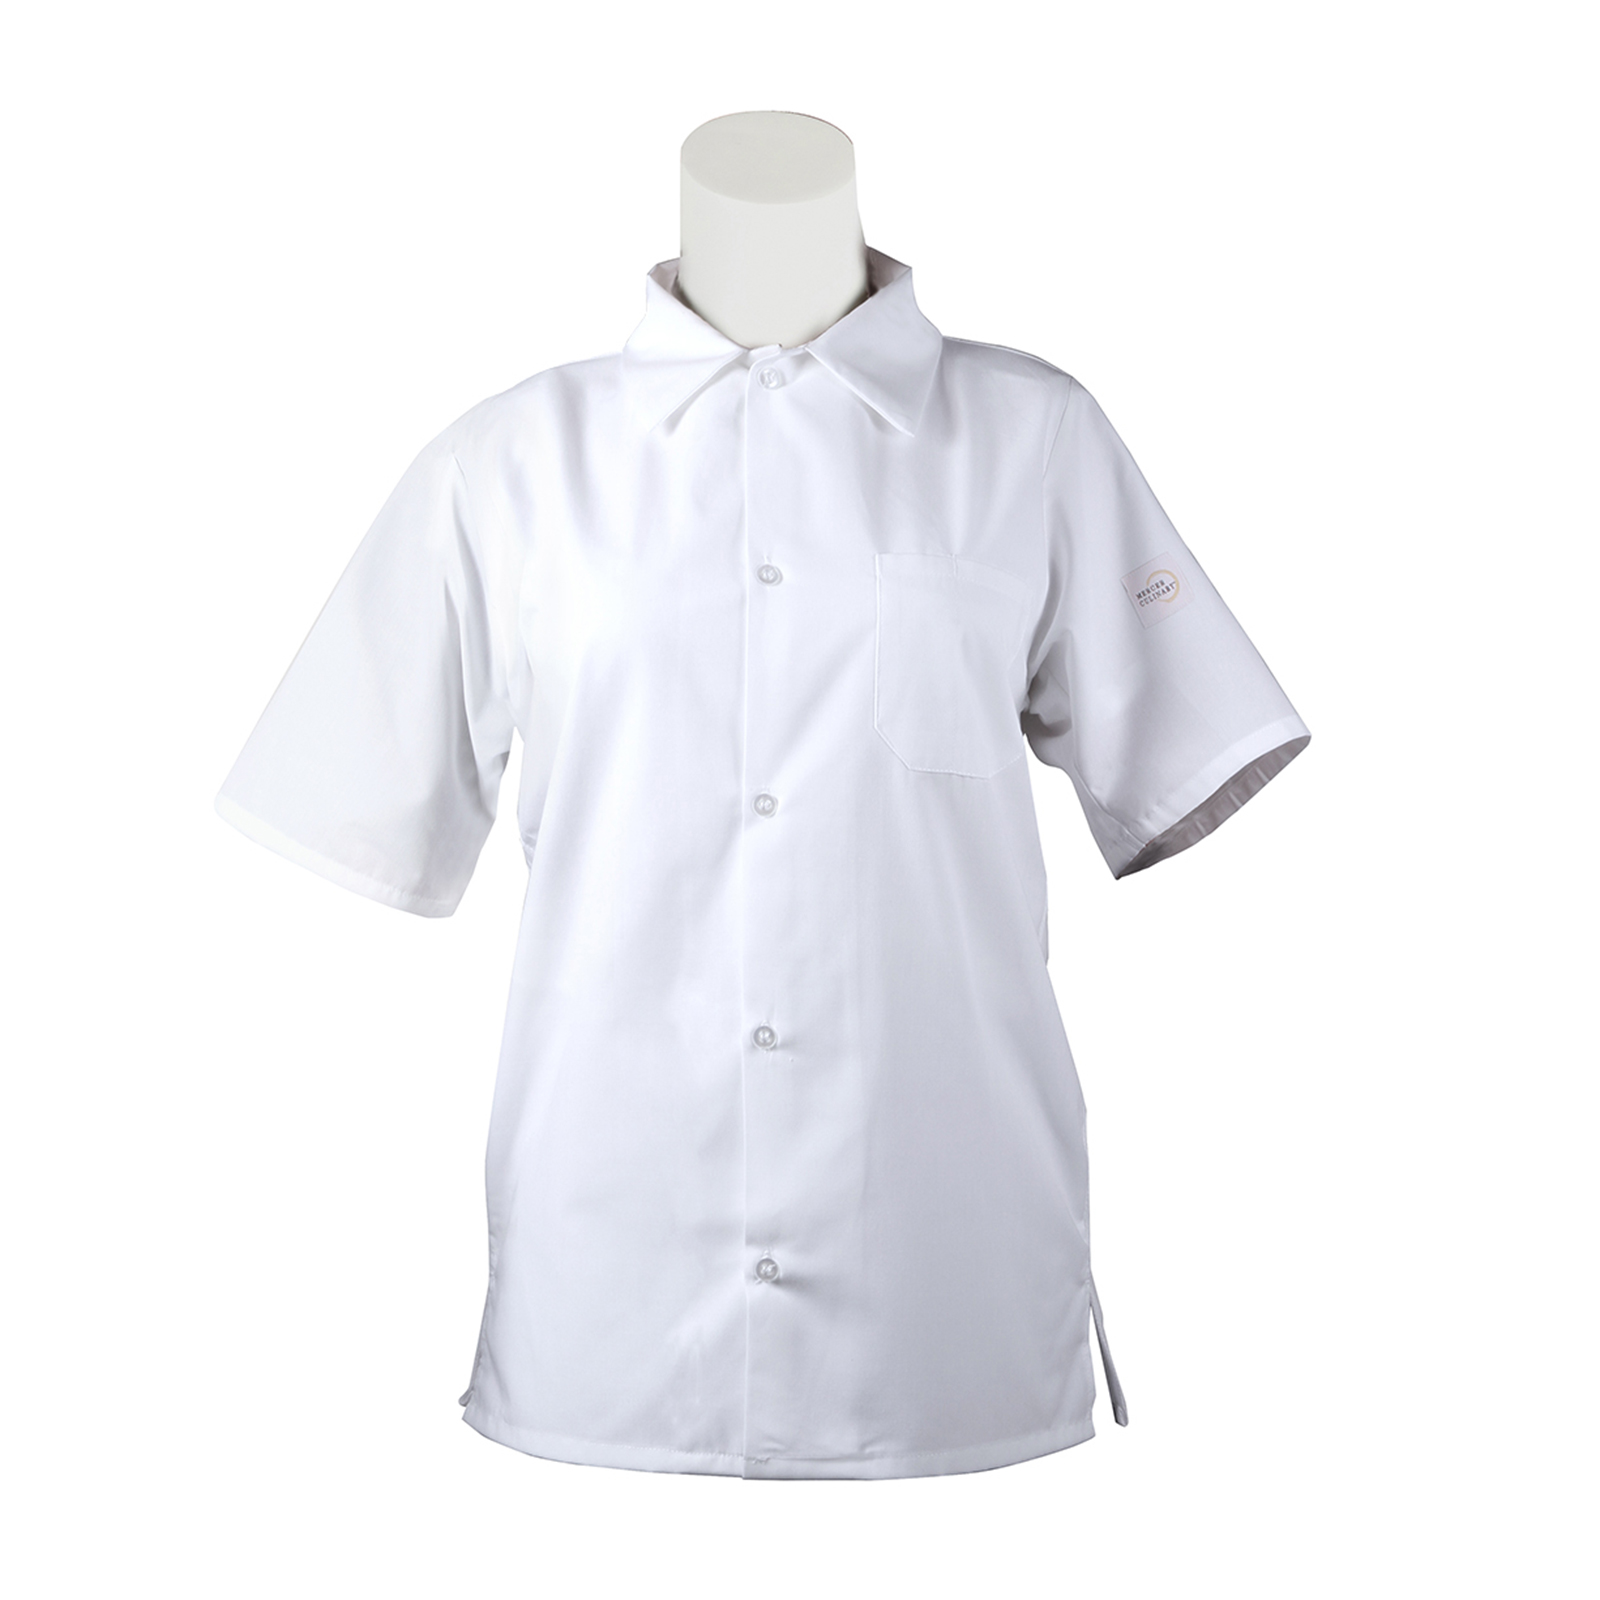 Mercer Culinary M60200WHL cook's shirt